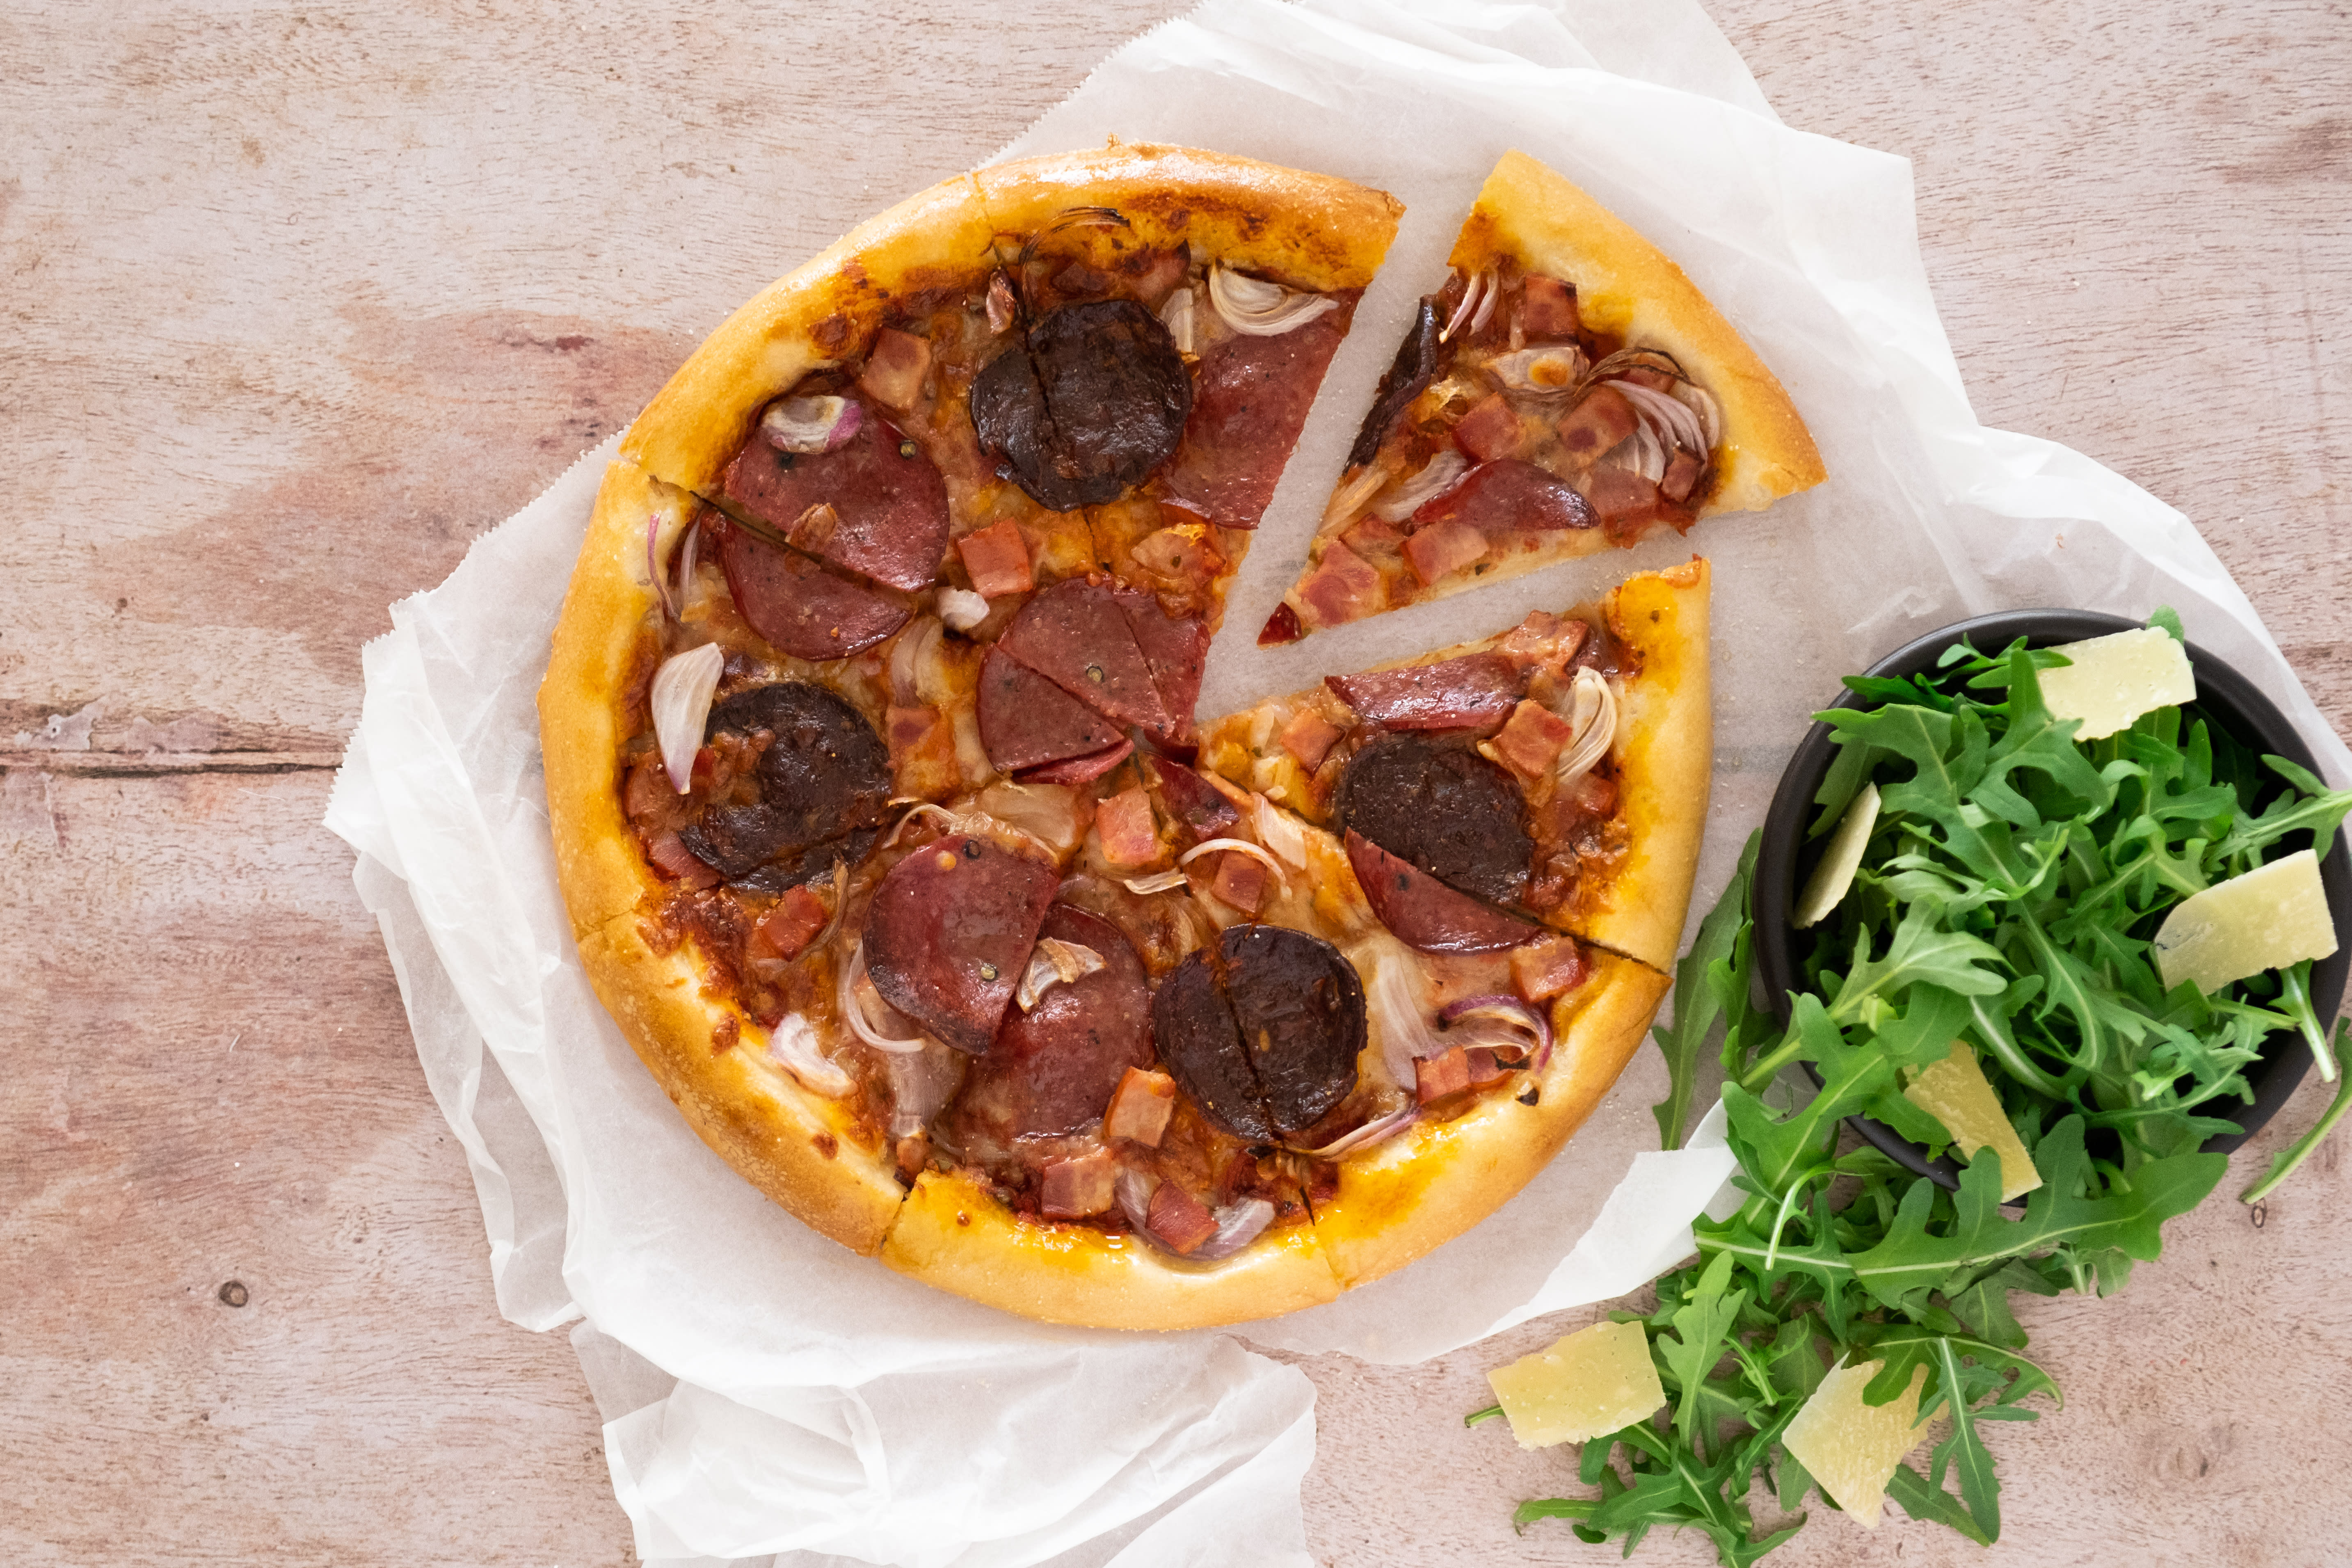 Meat Lovers Pizza with Rocket Salad